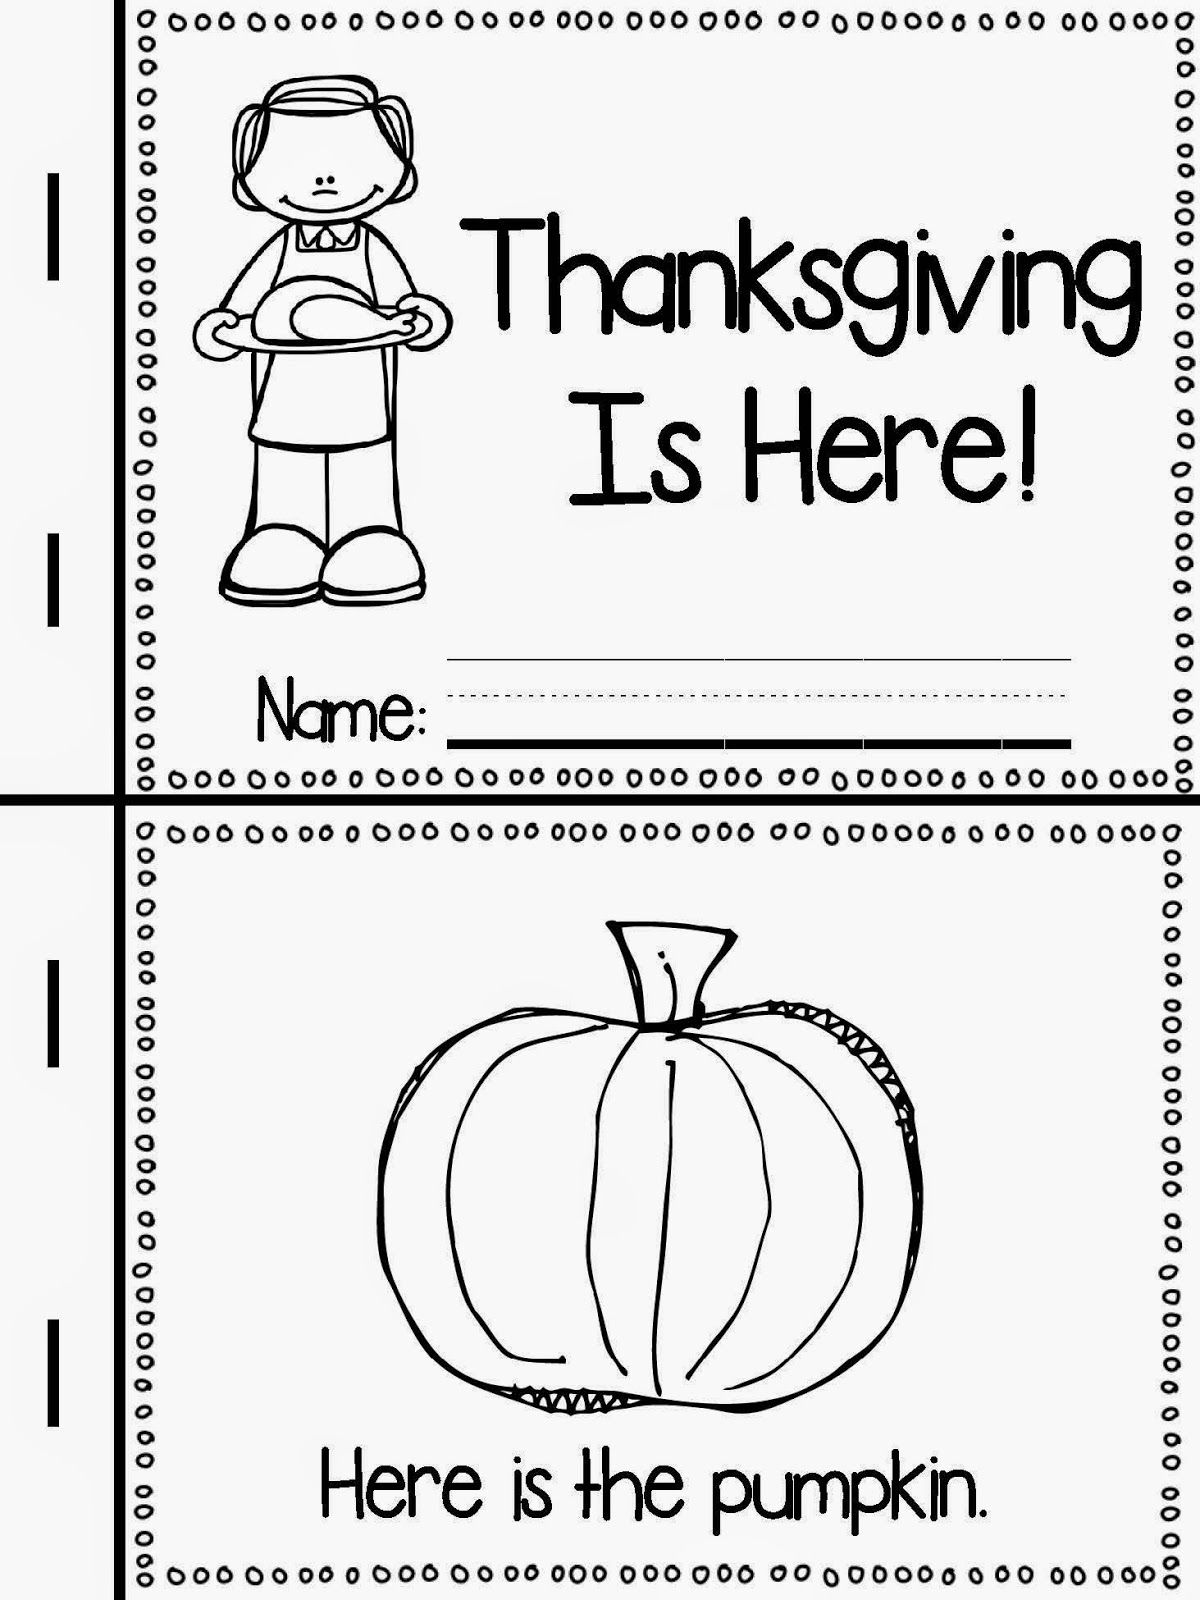 Can You Believe We Have A Week Before Thanksgiving Break I Am So In Awe Of How This Sch Thanksgiving Kindergarten Thanksgiving Lessons Thanksgiving Worksheets [ 1600 x 1200 Pixel ]